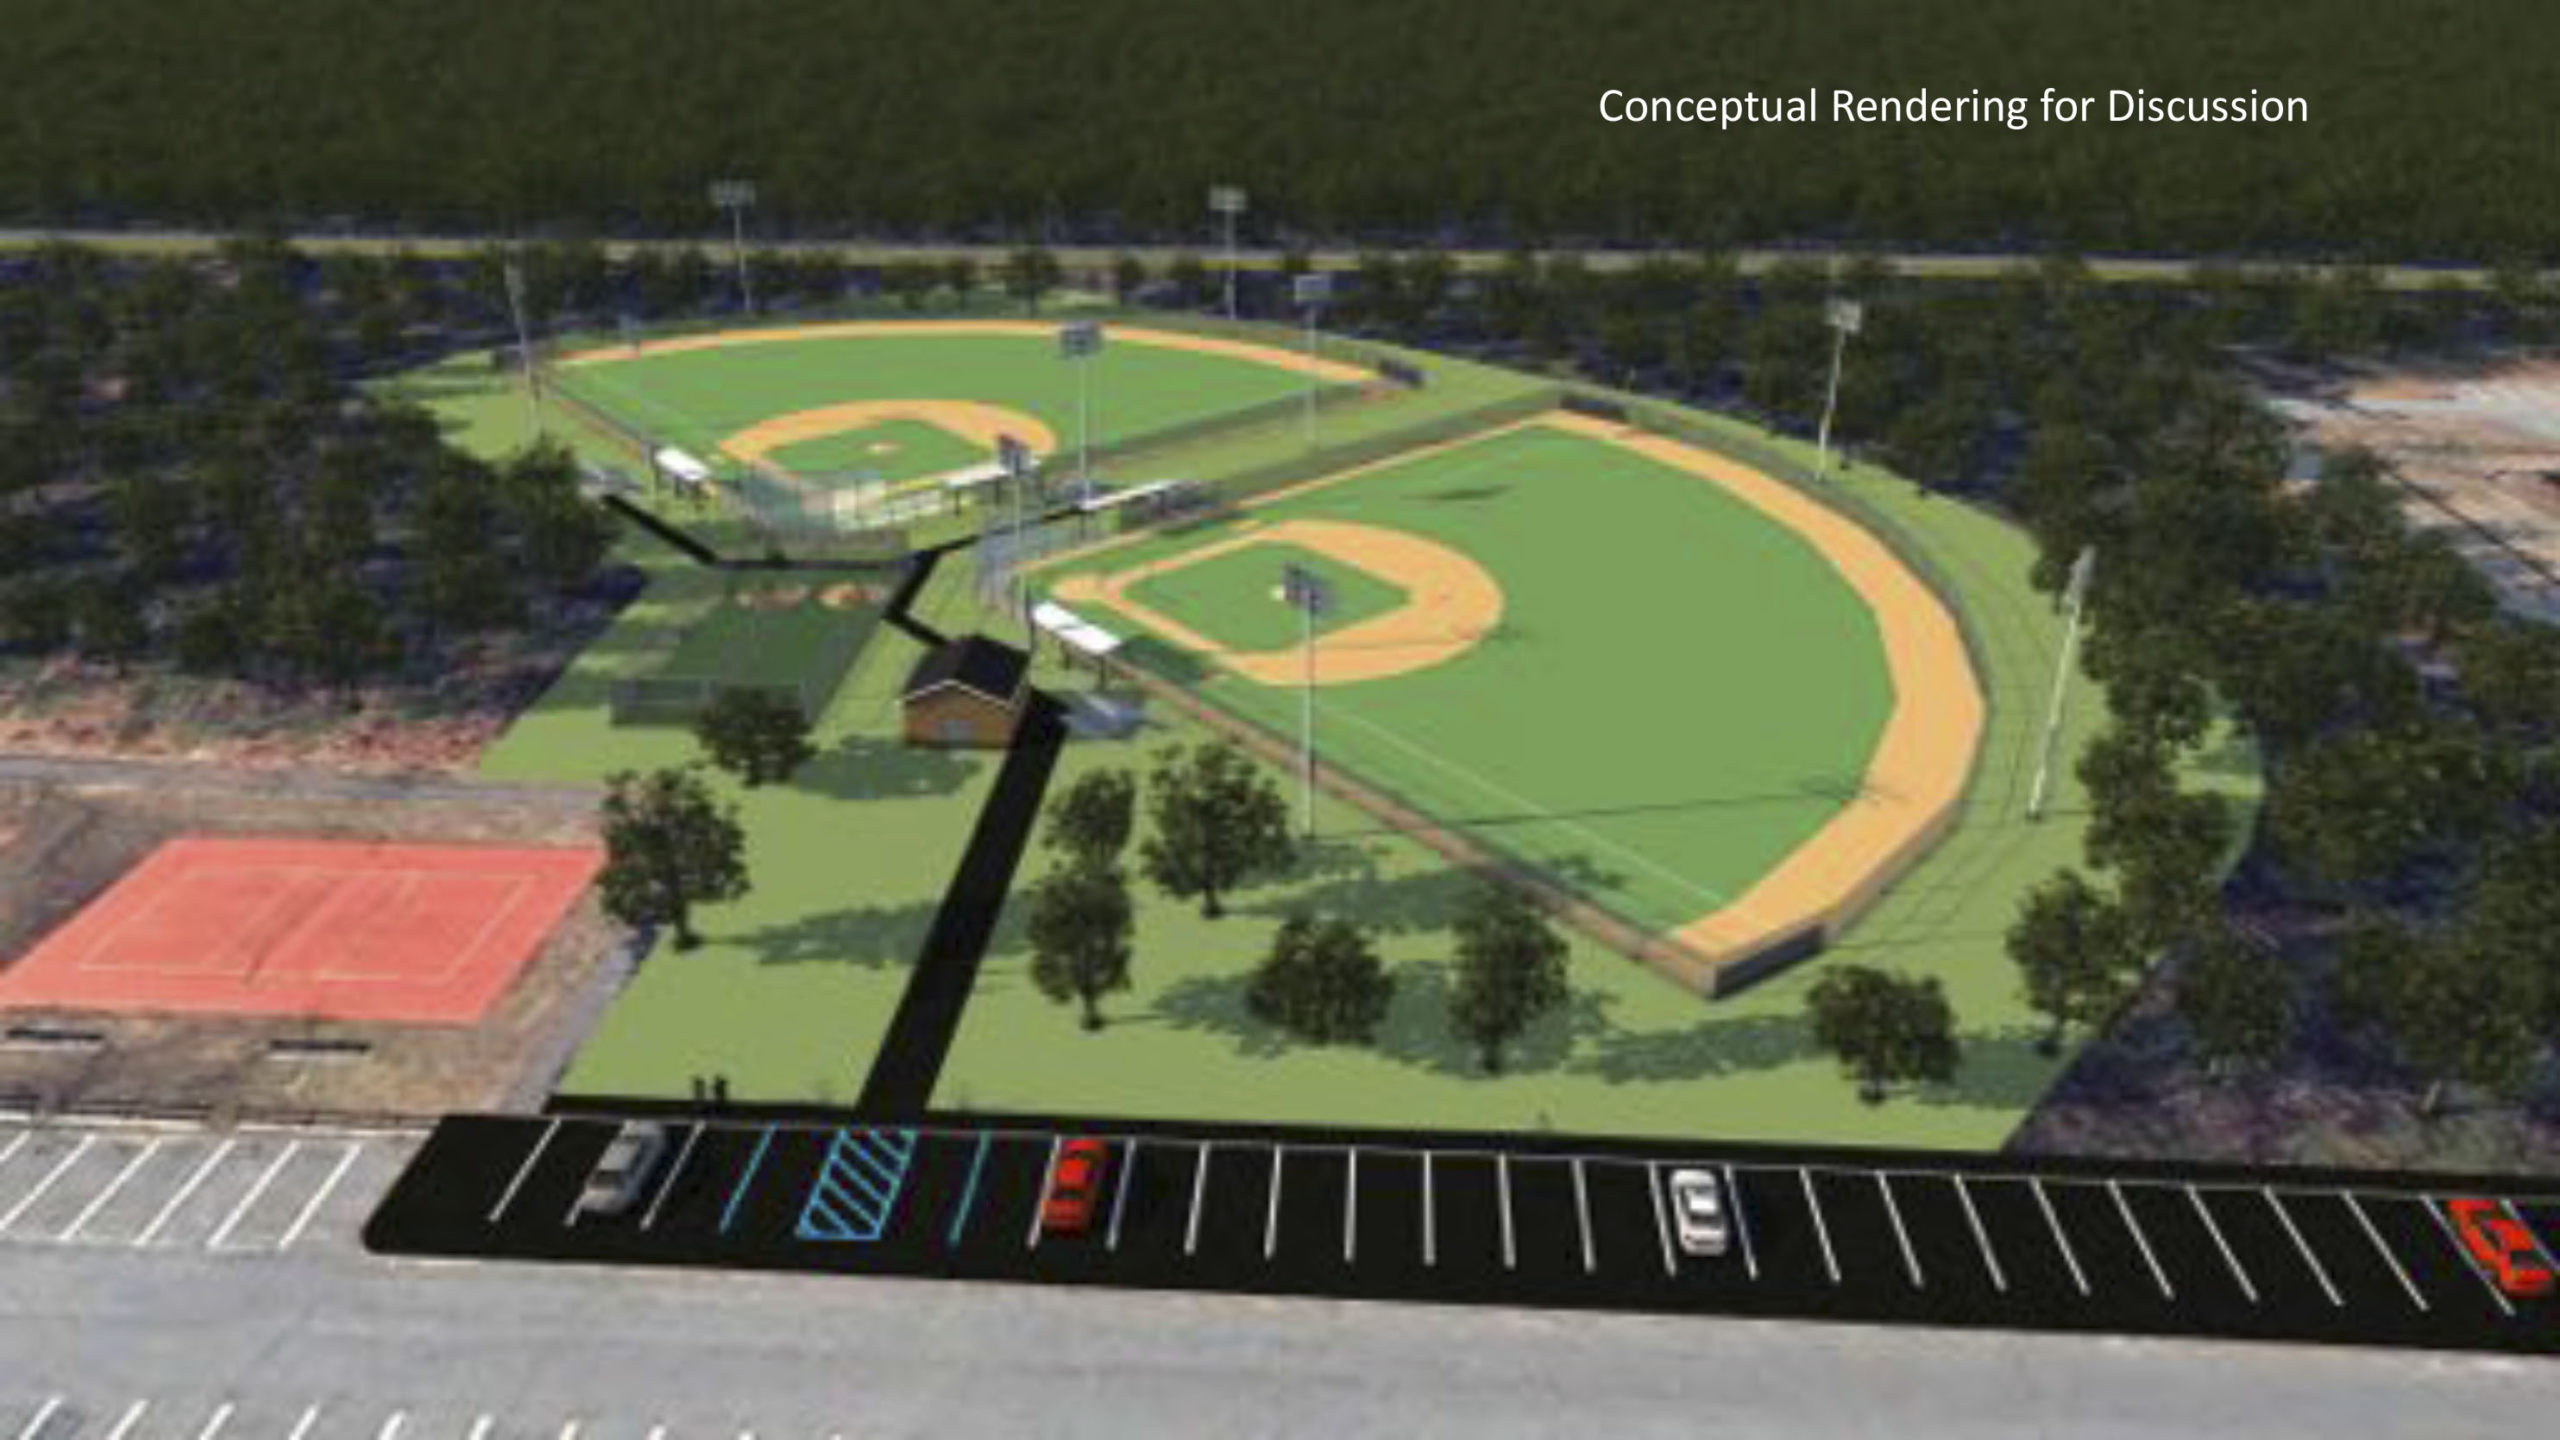 A committee has recommended building two new artifical turf ballfields off Stephen Hands Path.